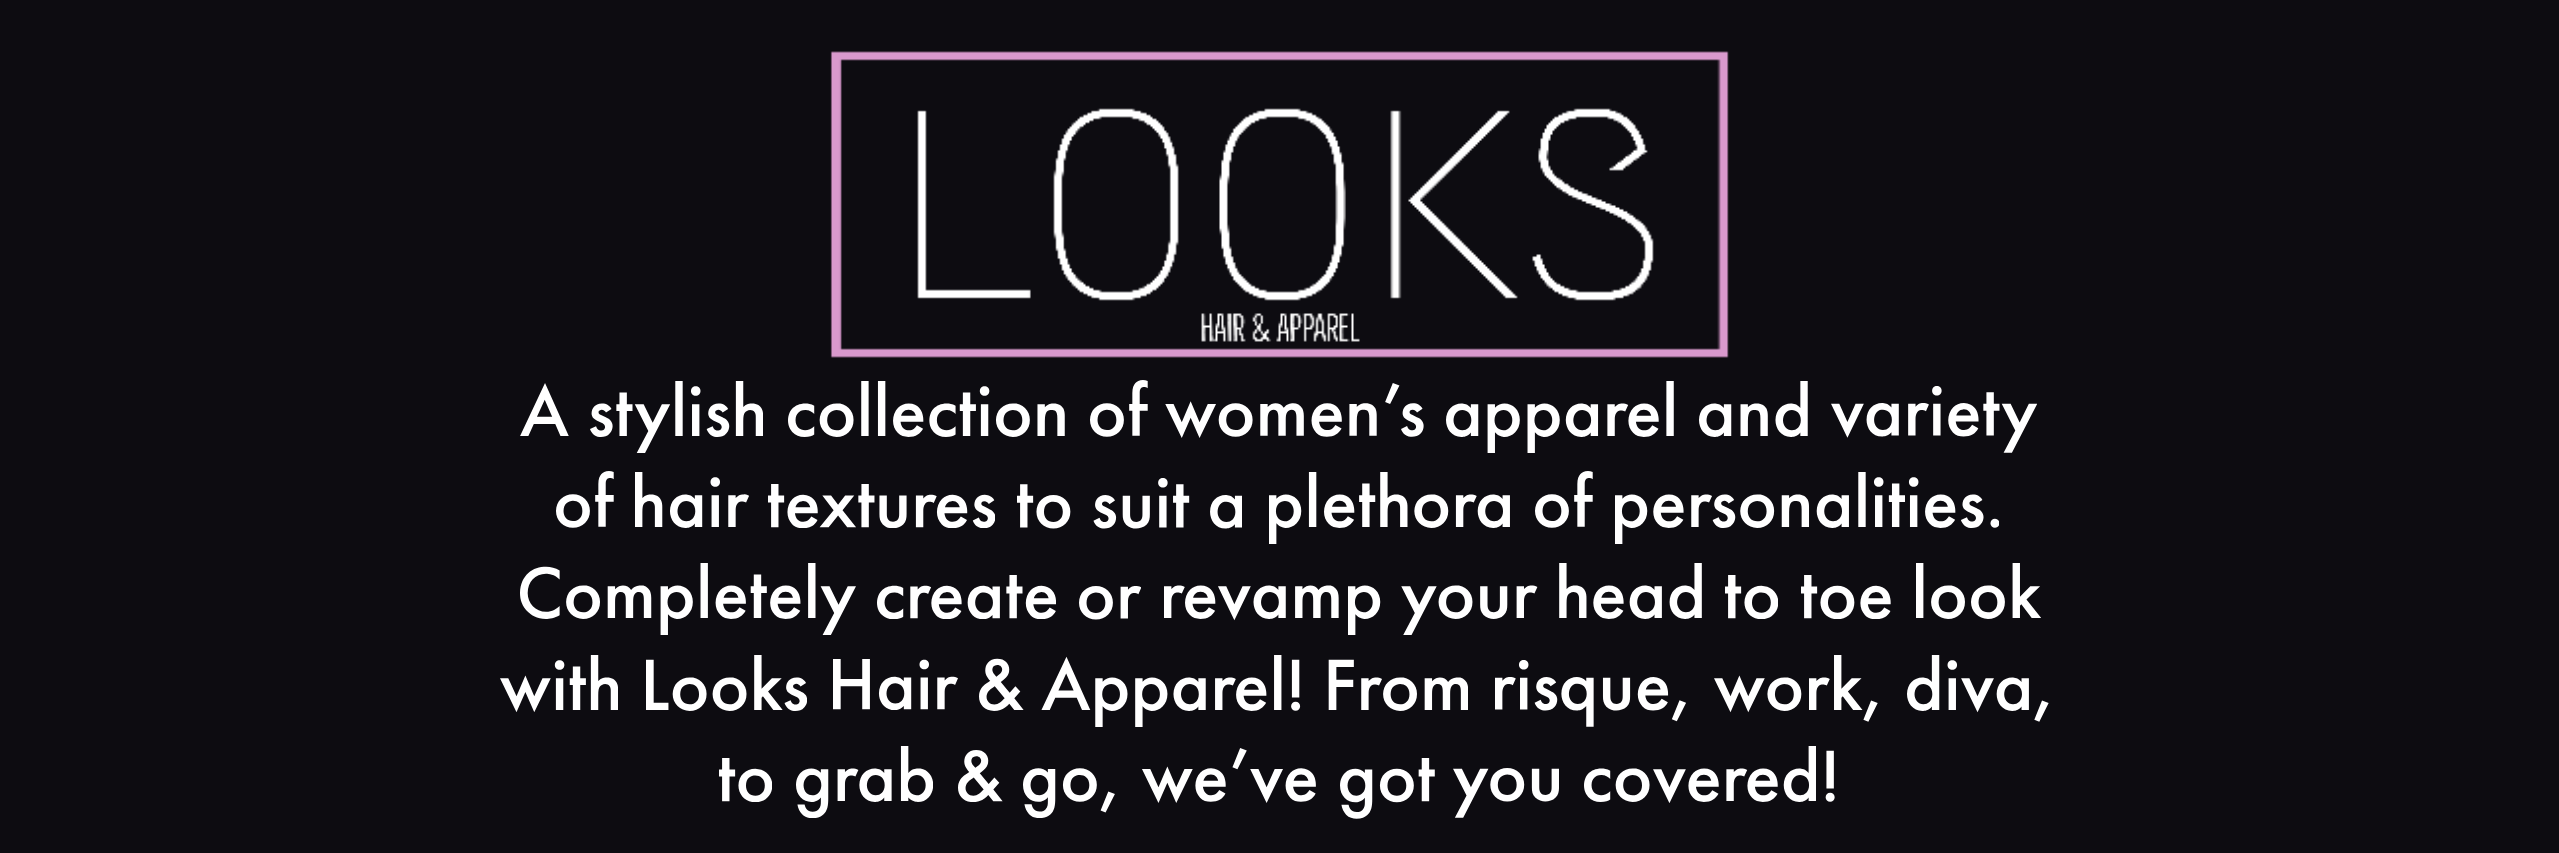 Looks hair and Apperal. A stylish collection of women's Apparel and variety of hair textures to suit a plethora of personalities. Completely create or Revamp your head to toe look with Looks hair & Apparel. From risque work diva to grab and go, we've got you  covered